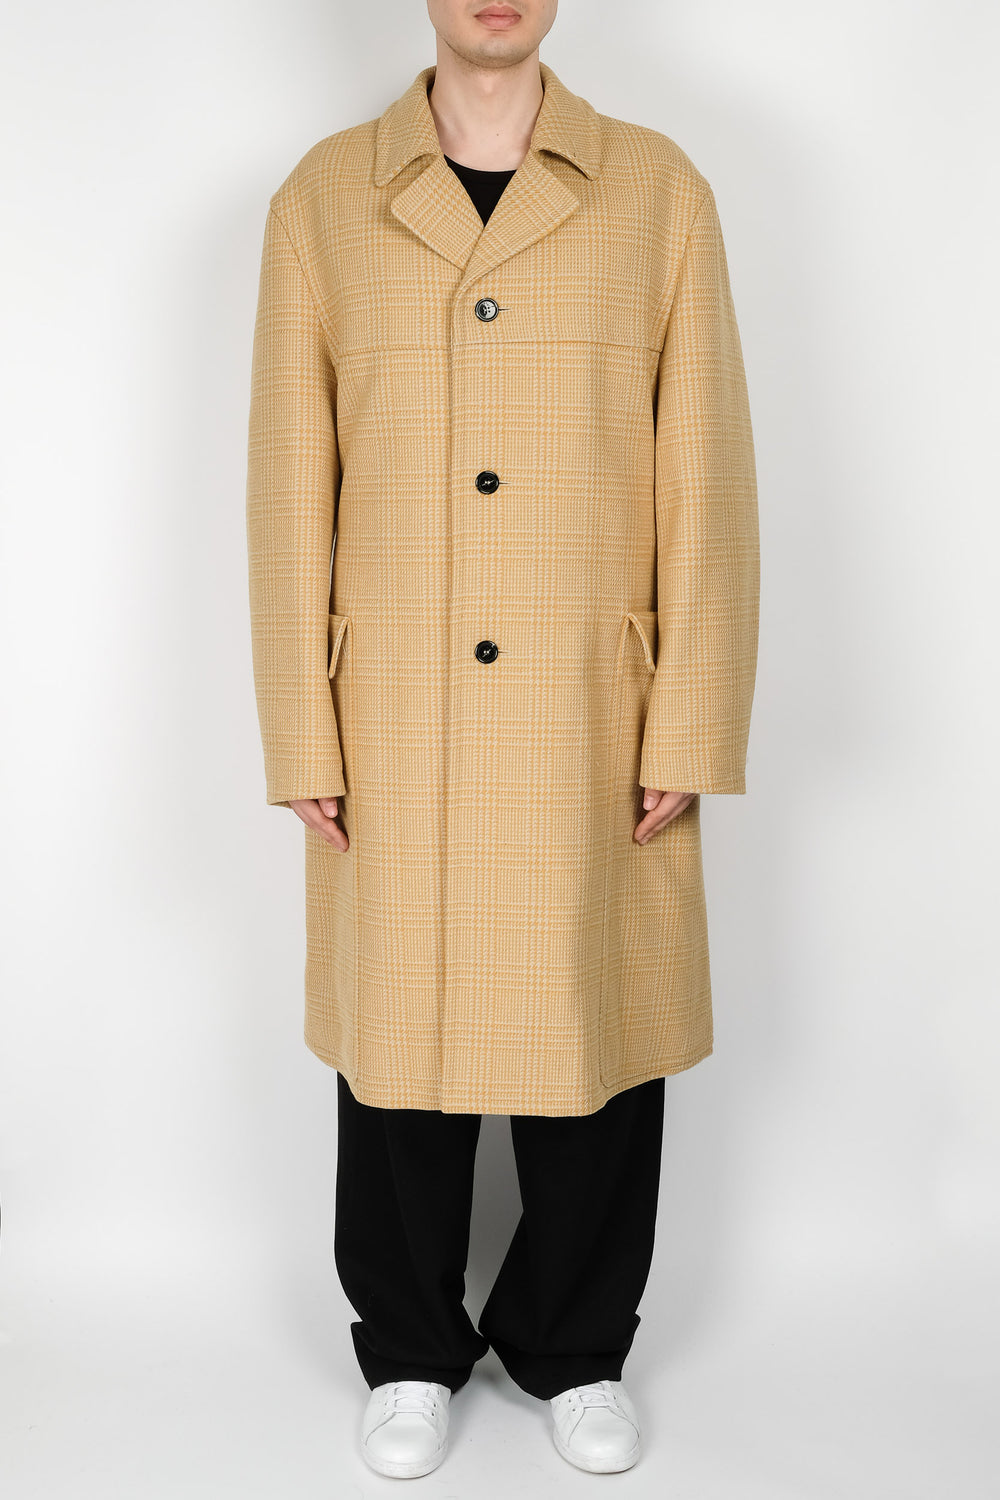 Raf Simons Trenchcoat In Yellow